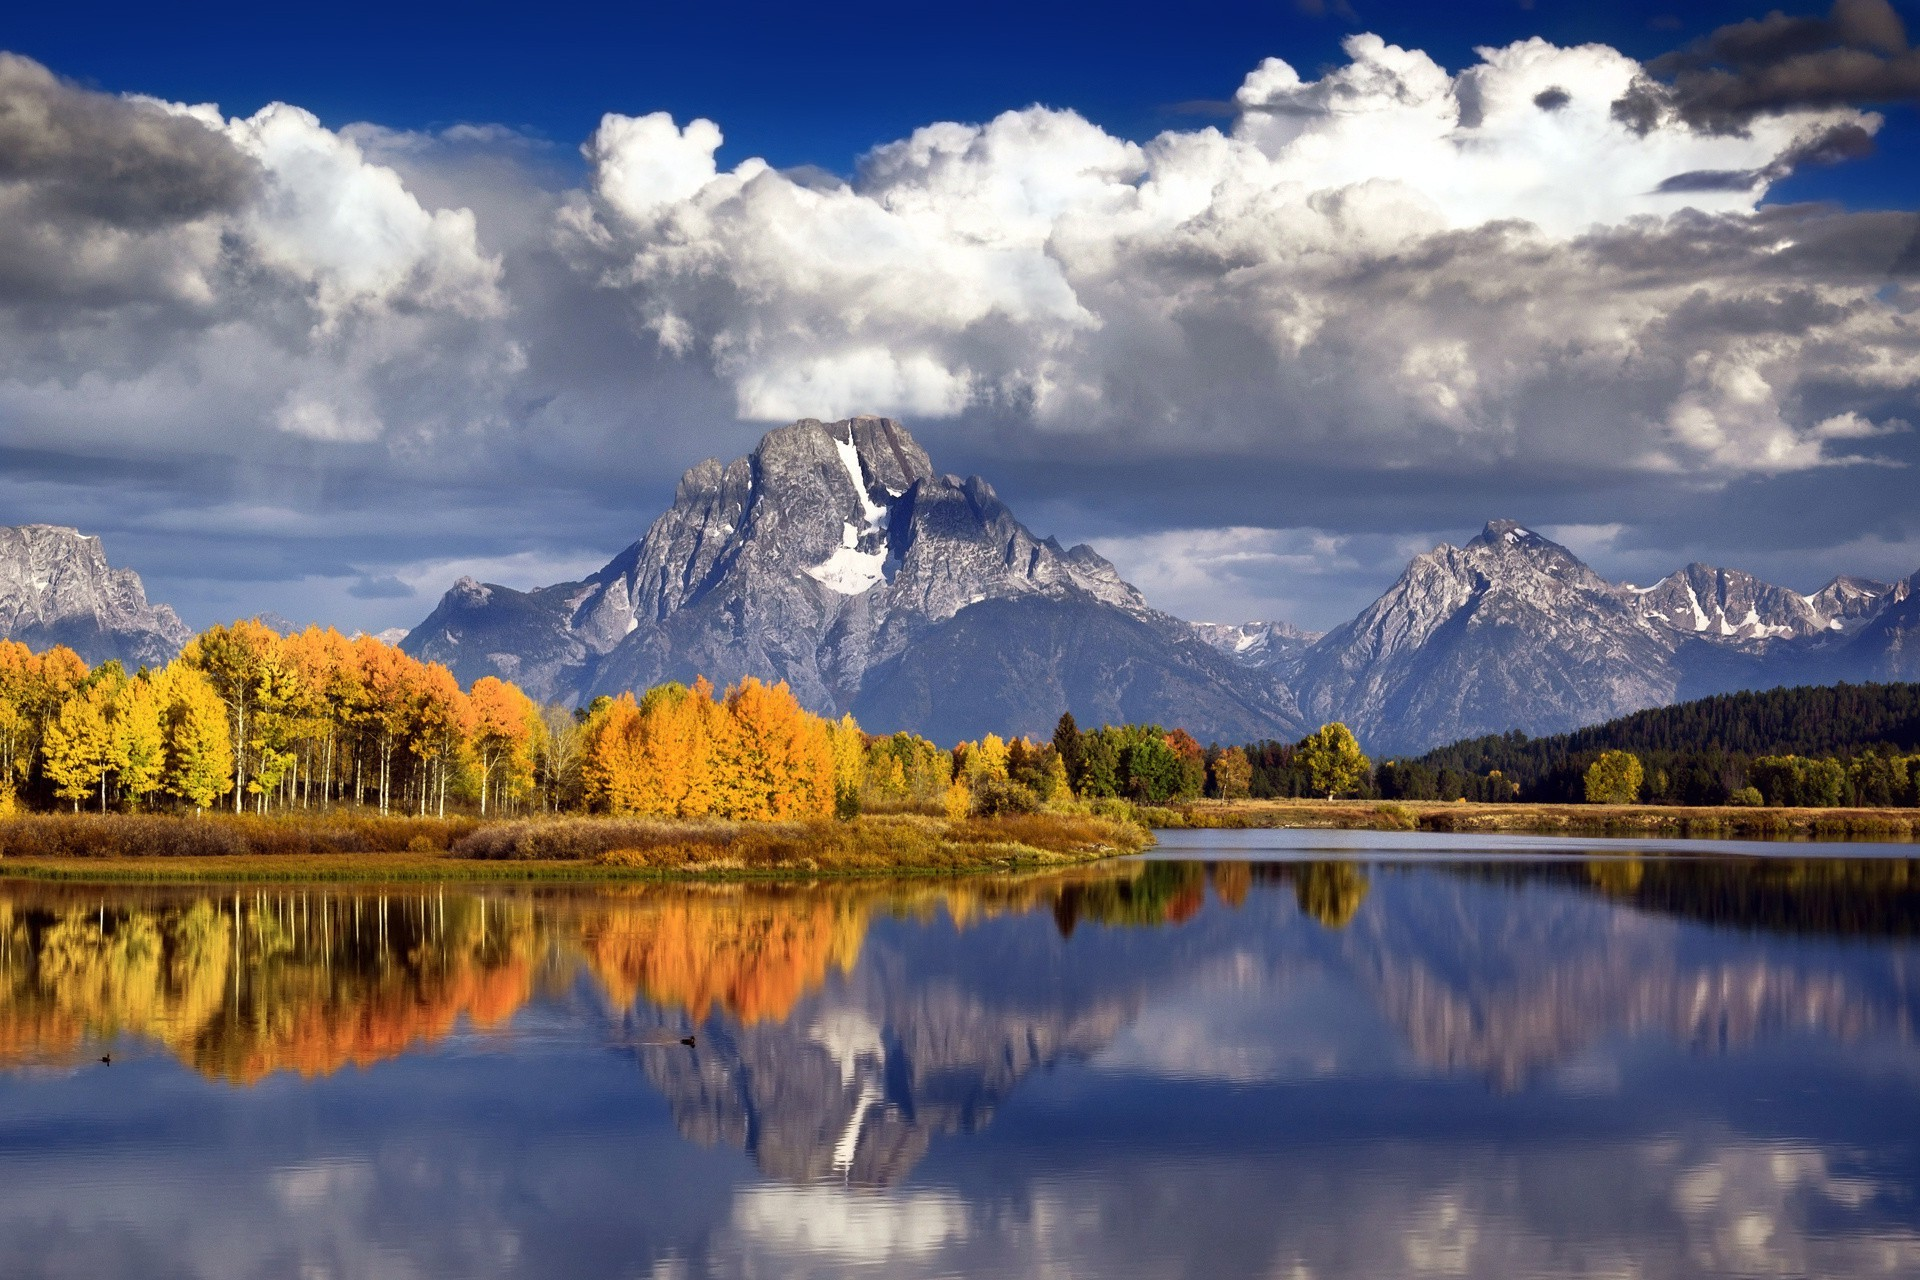 lake reflection landscape mountain water snow nature scenic wood sky fall dawn